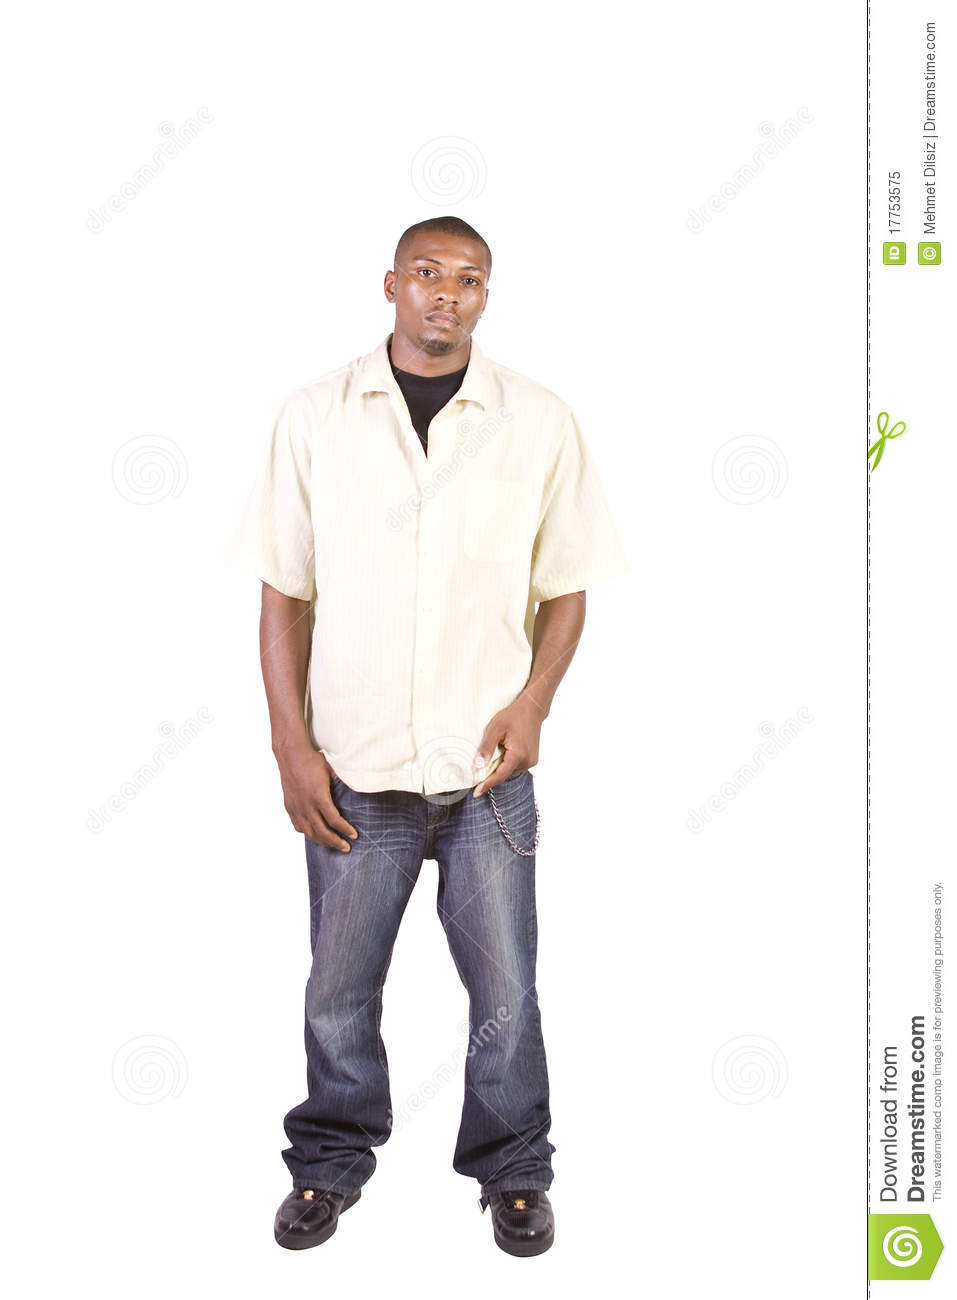 Casua Black Man Posing While Standing Stock Image - Image ...